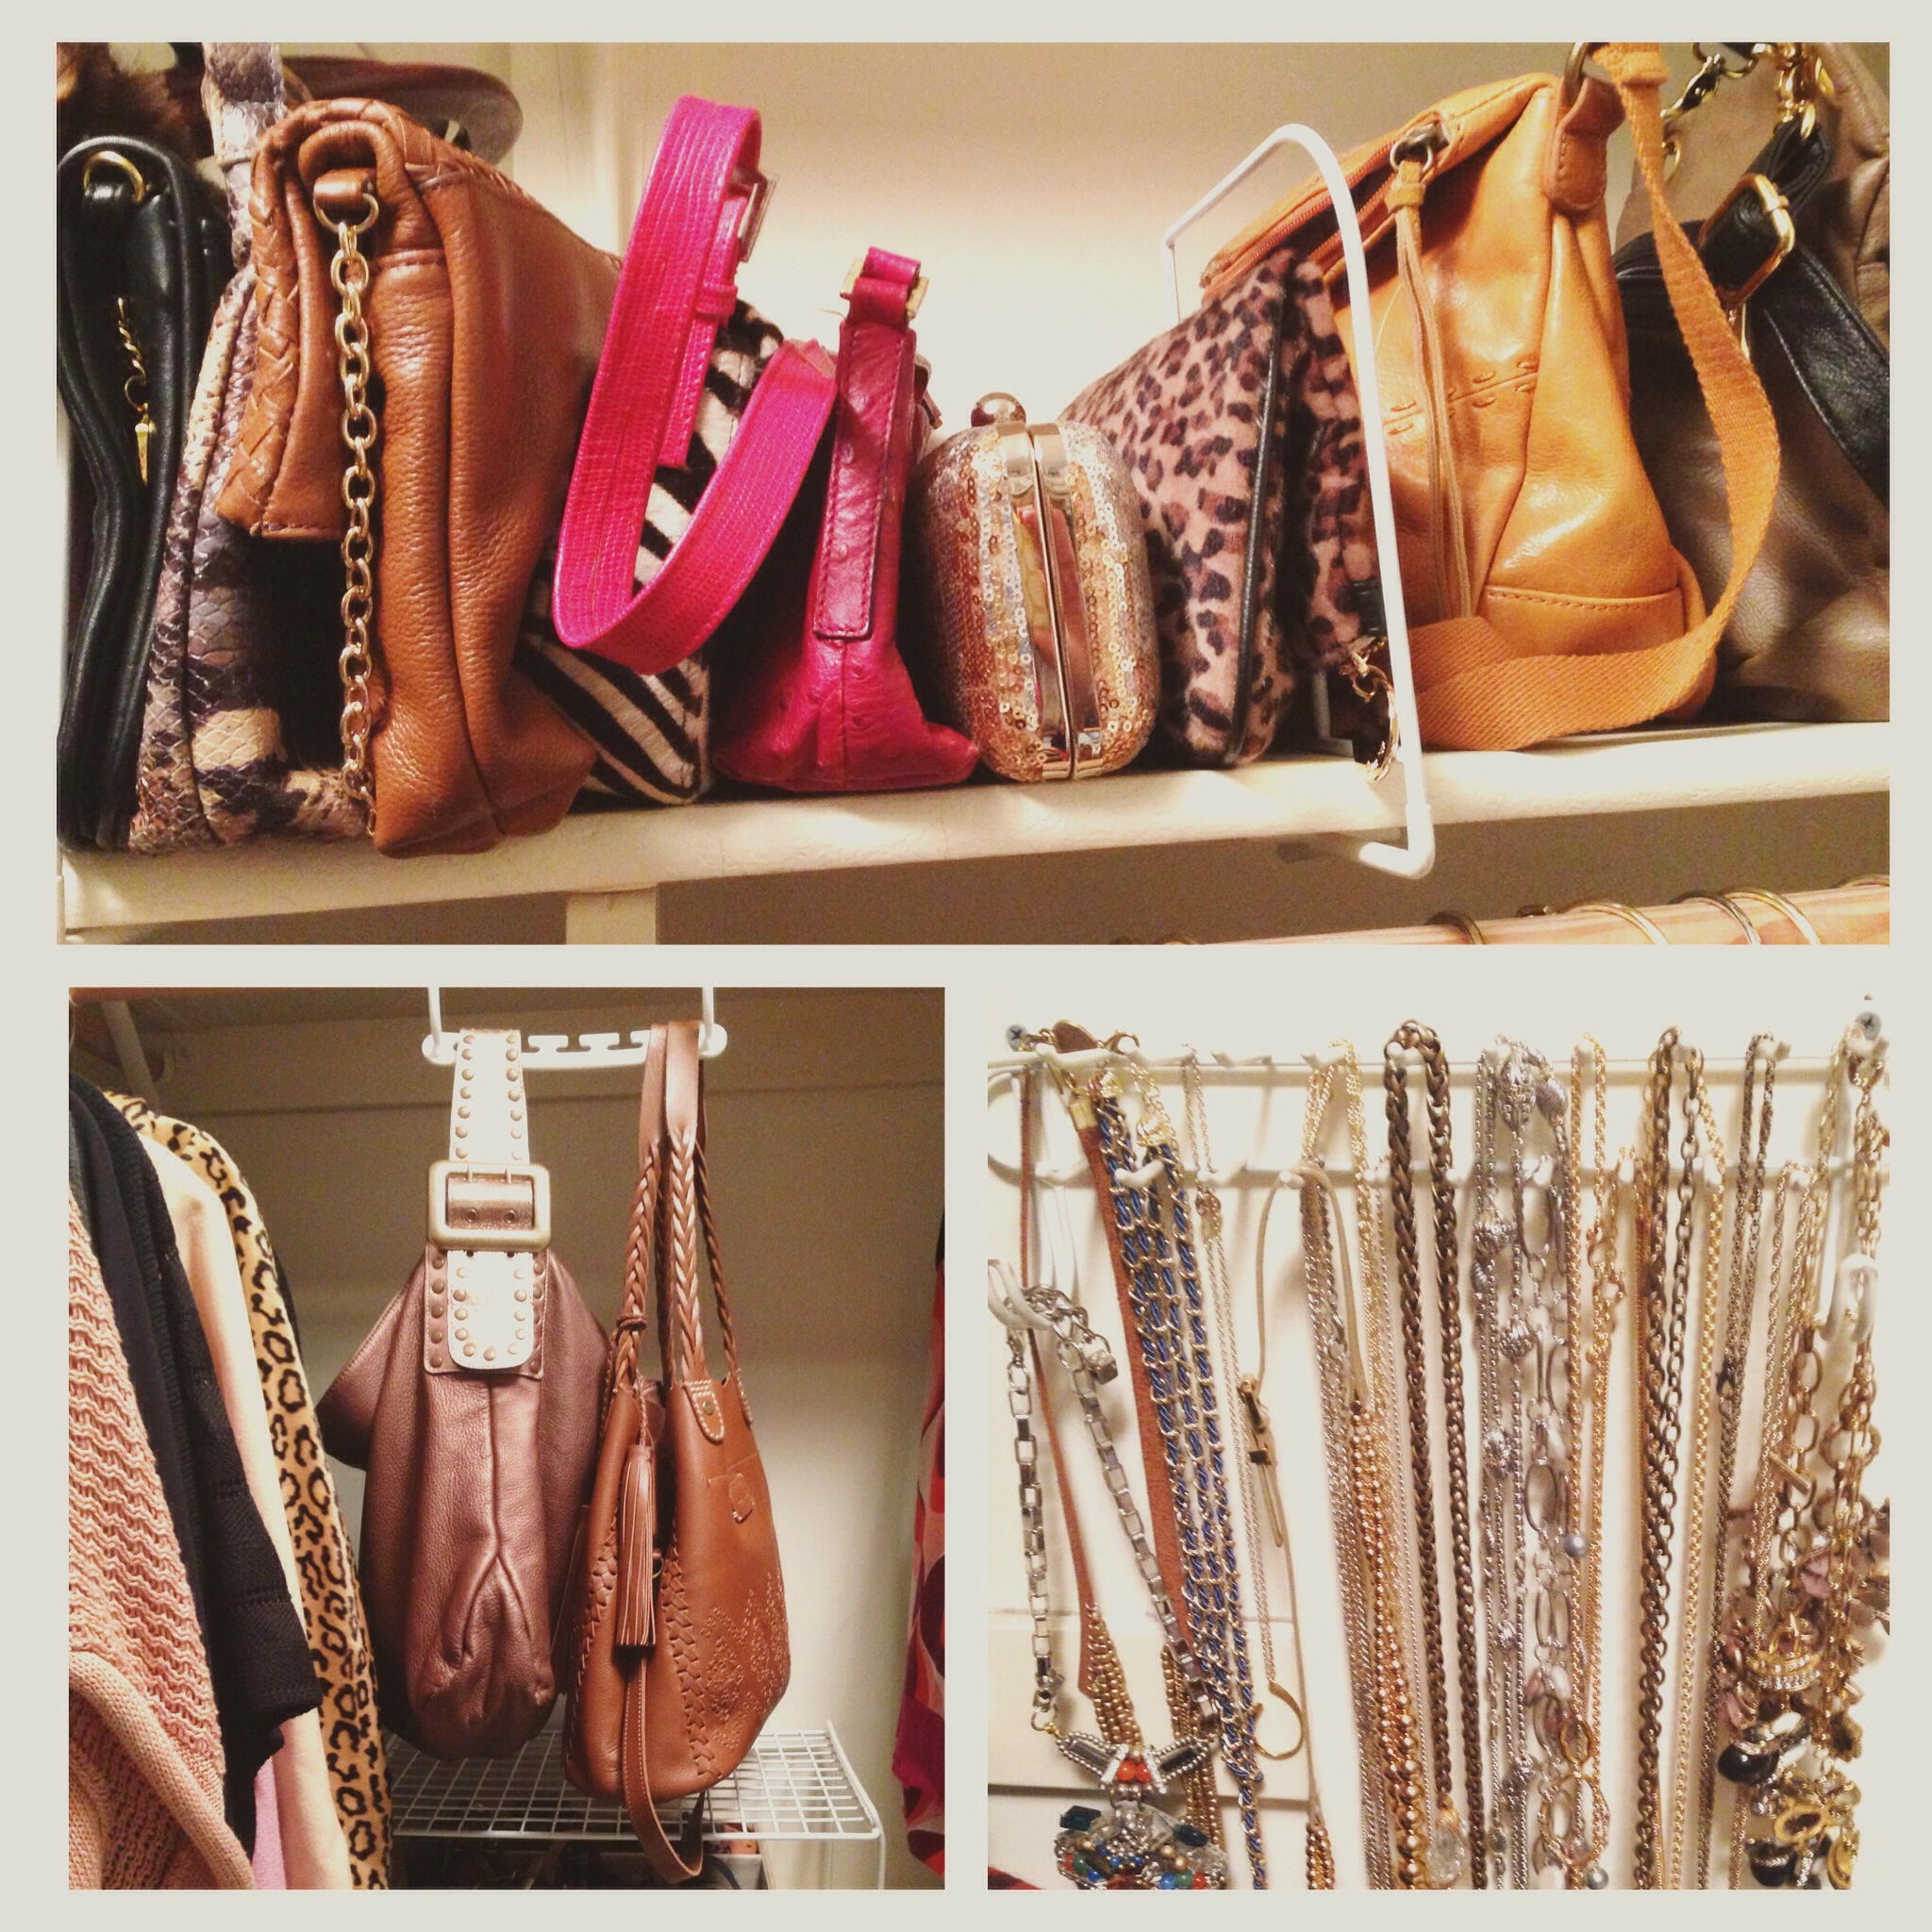 I Use Shelf Dividers To Make My Clutches And Handbags Line Up And Stay Put.